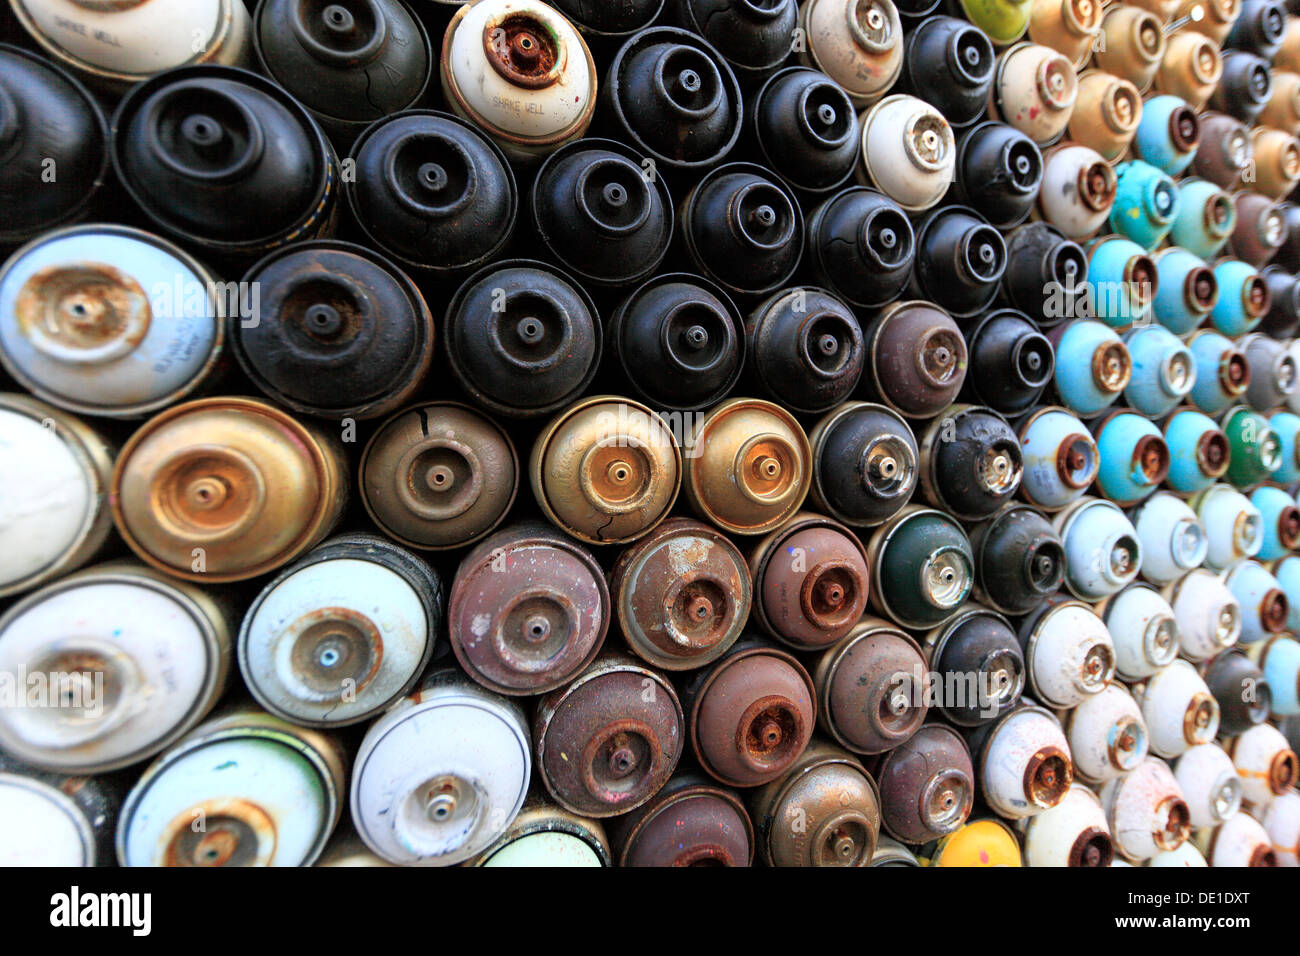 Cyprus, Limassol, Lemesos, house mural empty paint cans - Stock Image